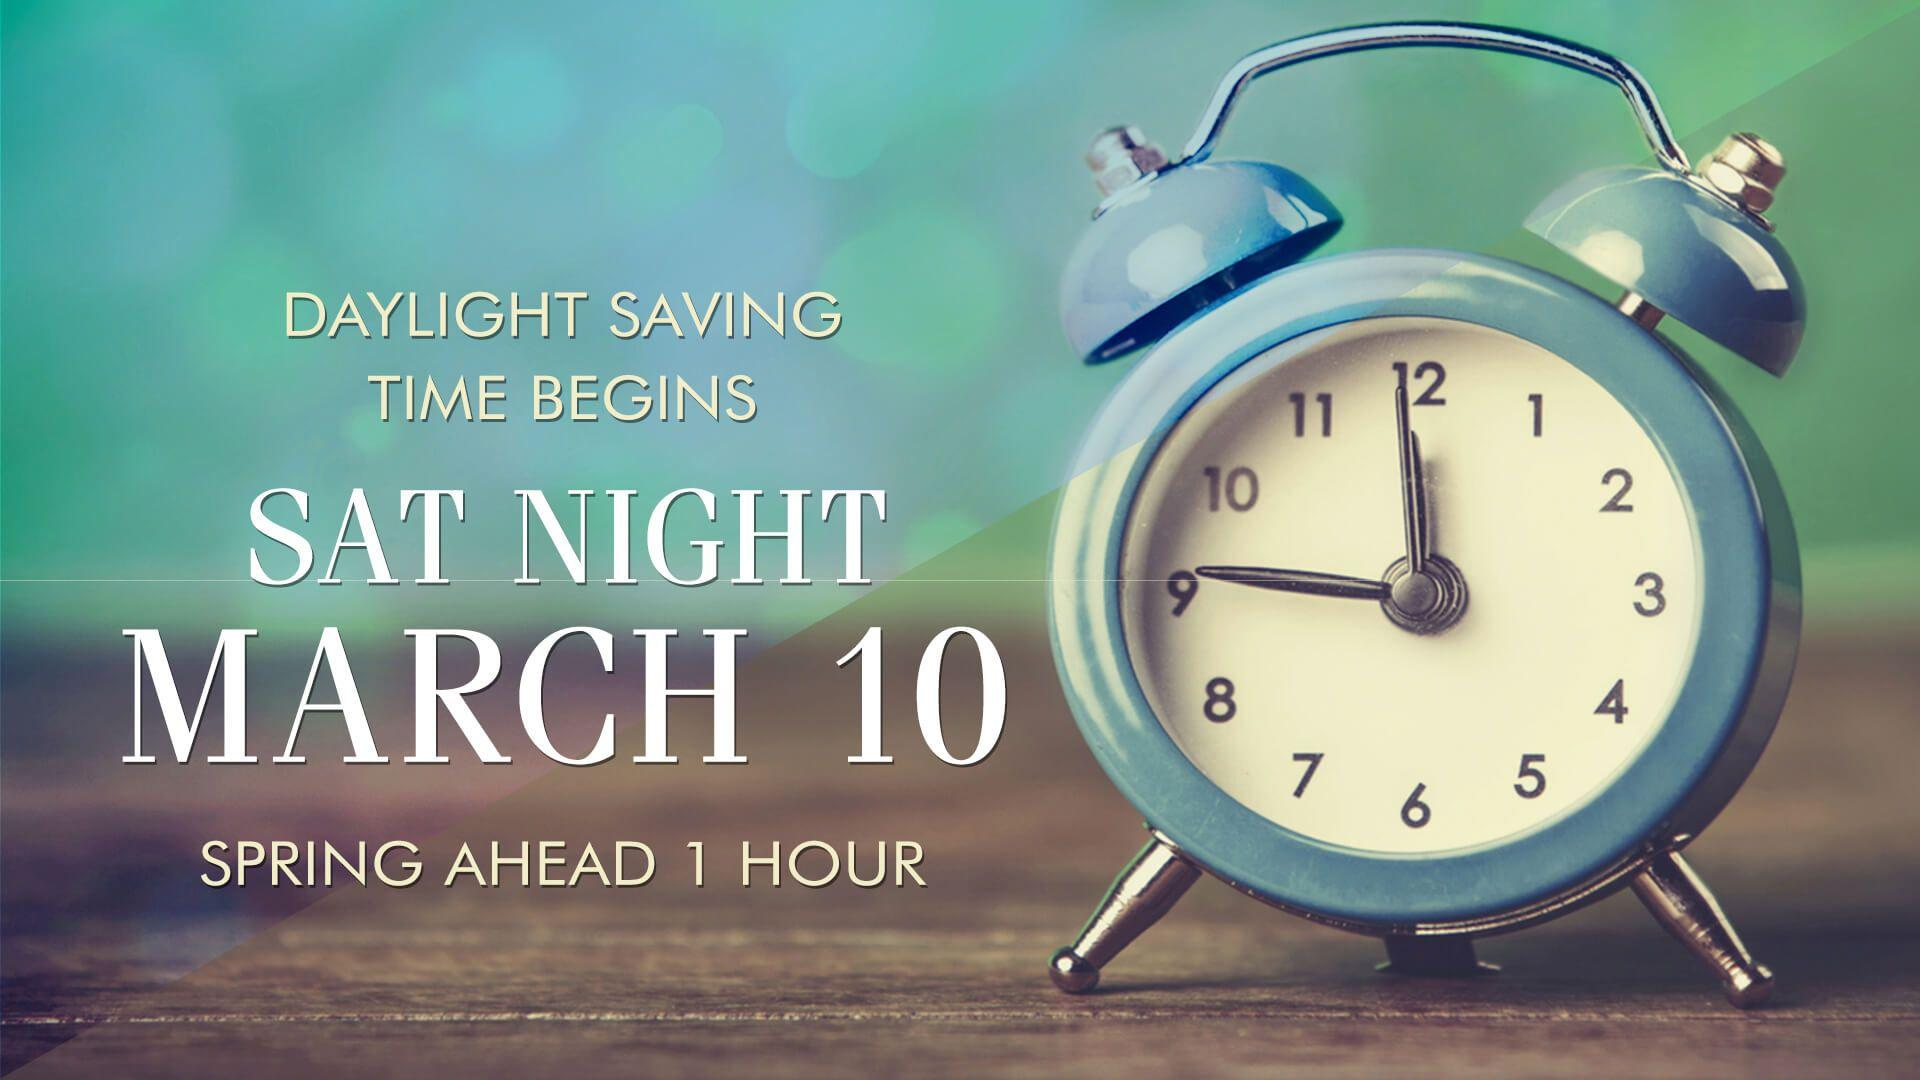 Daylight Saving Time is on Sunday March 11 2018 3112018 a time when most of the US will move the clock forward by one full hour